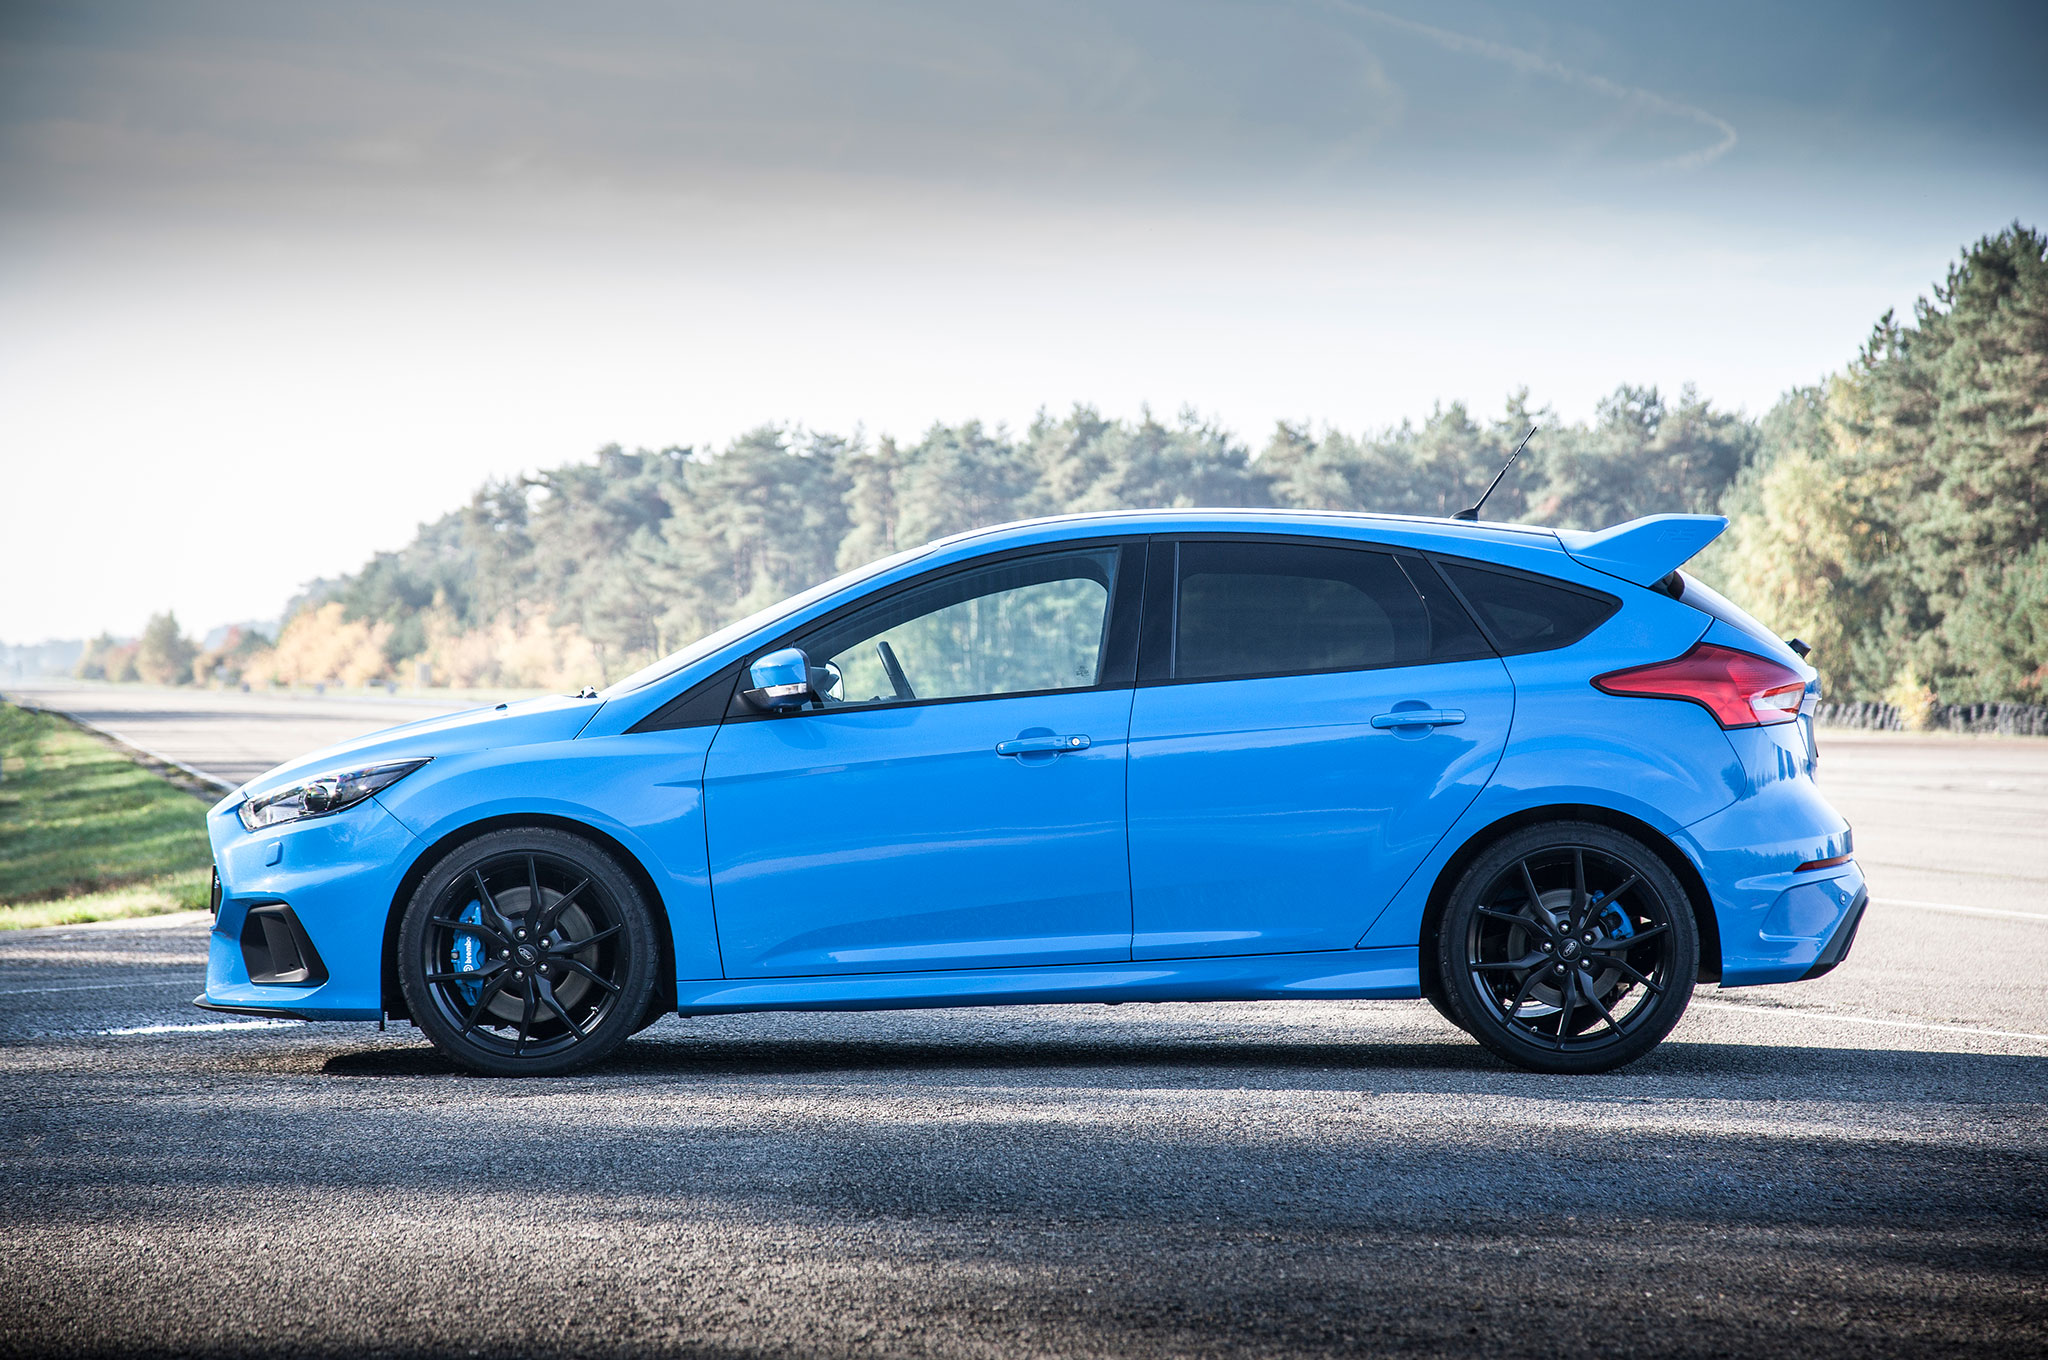 rs packs ford into price autoblog the ride focus horsepower along hennessey